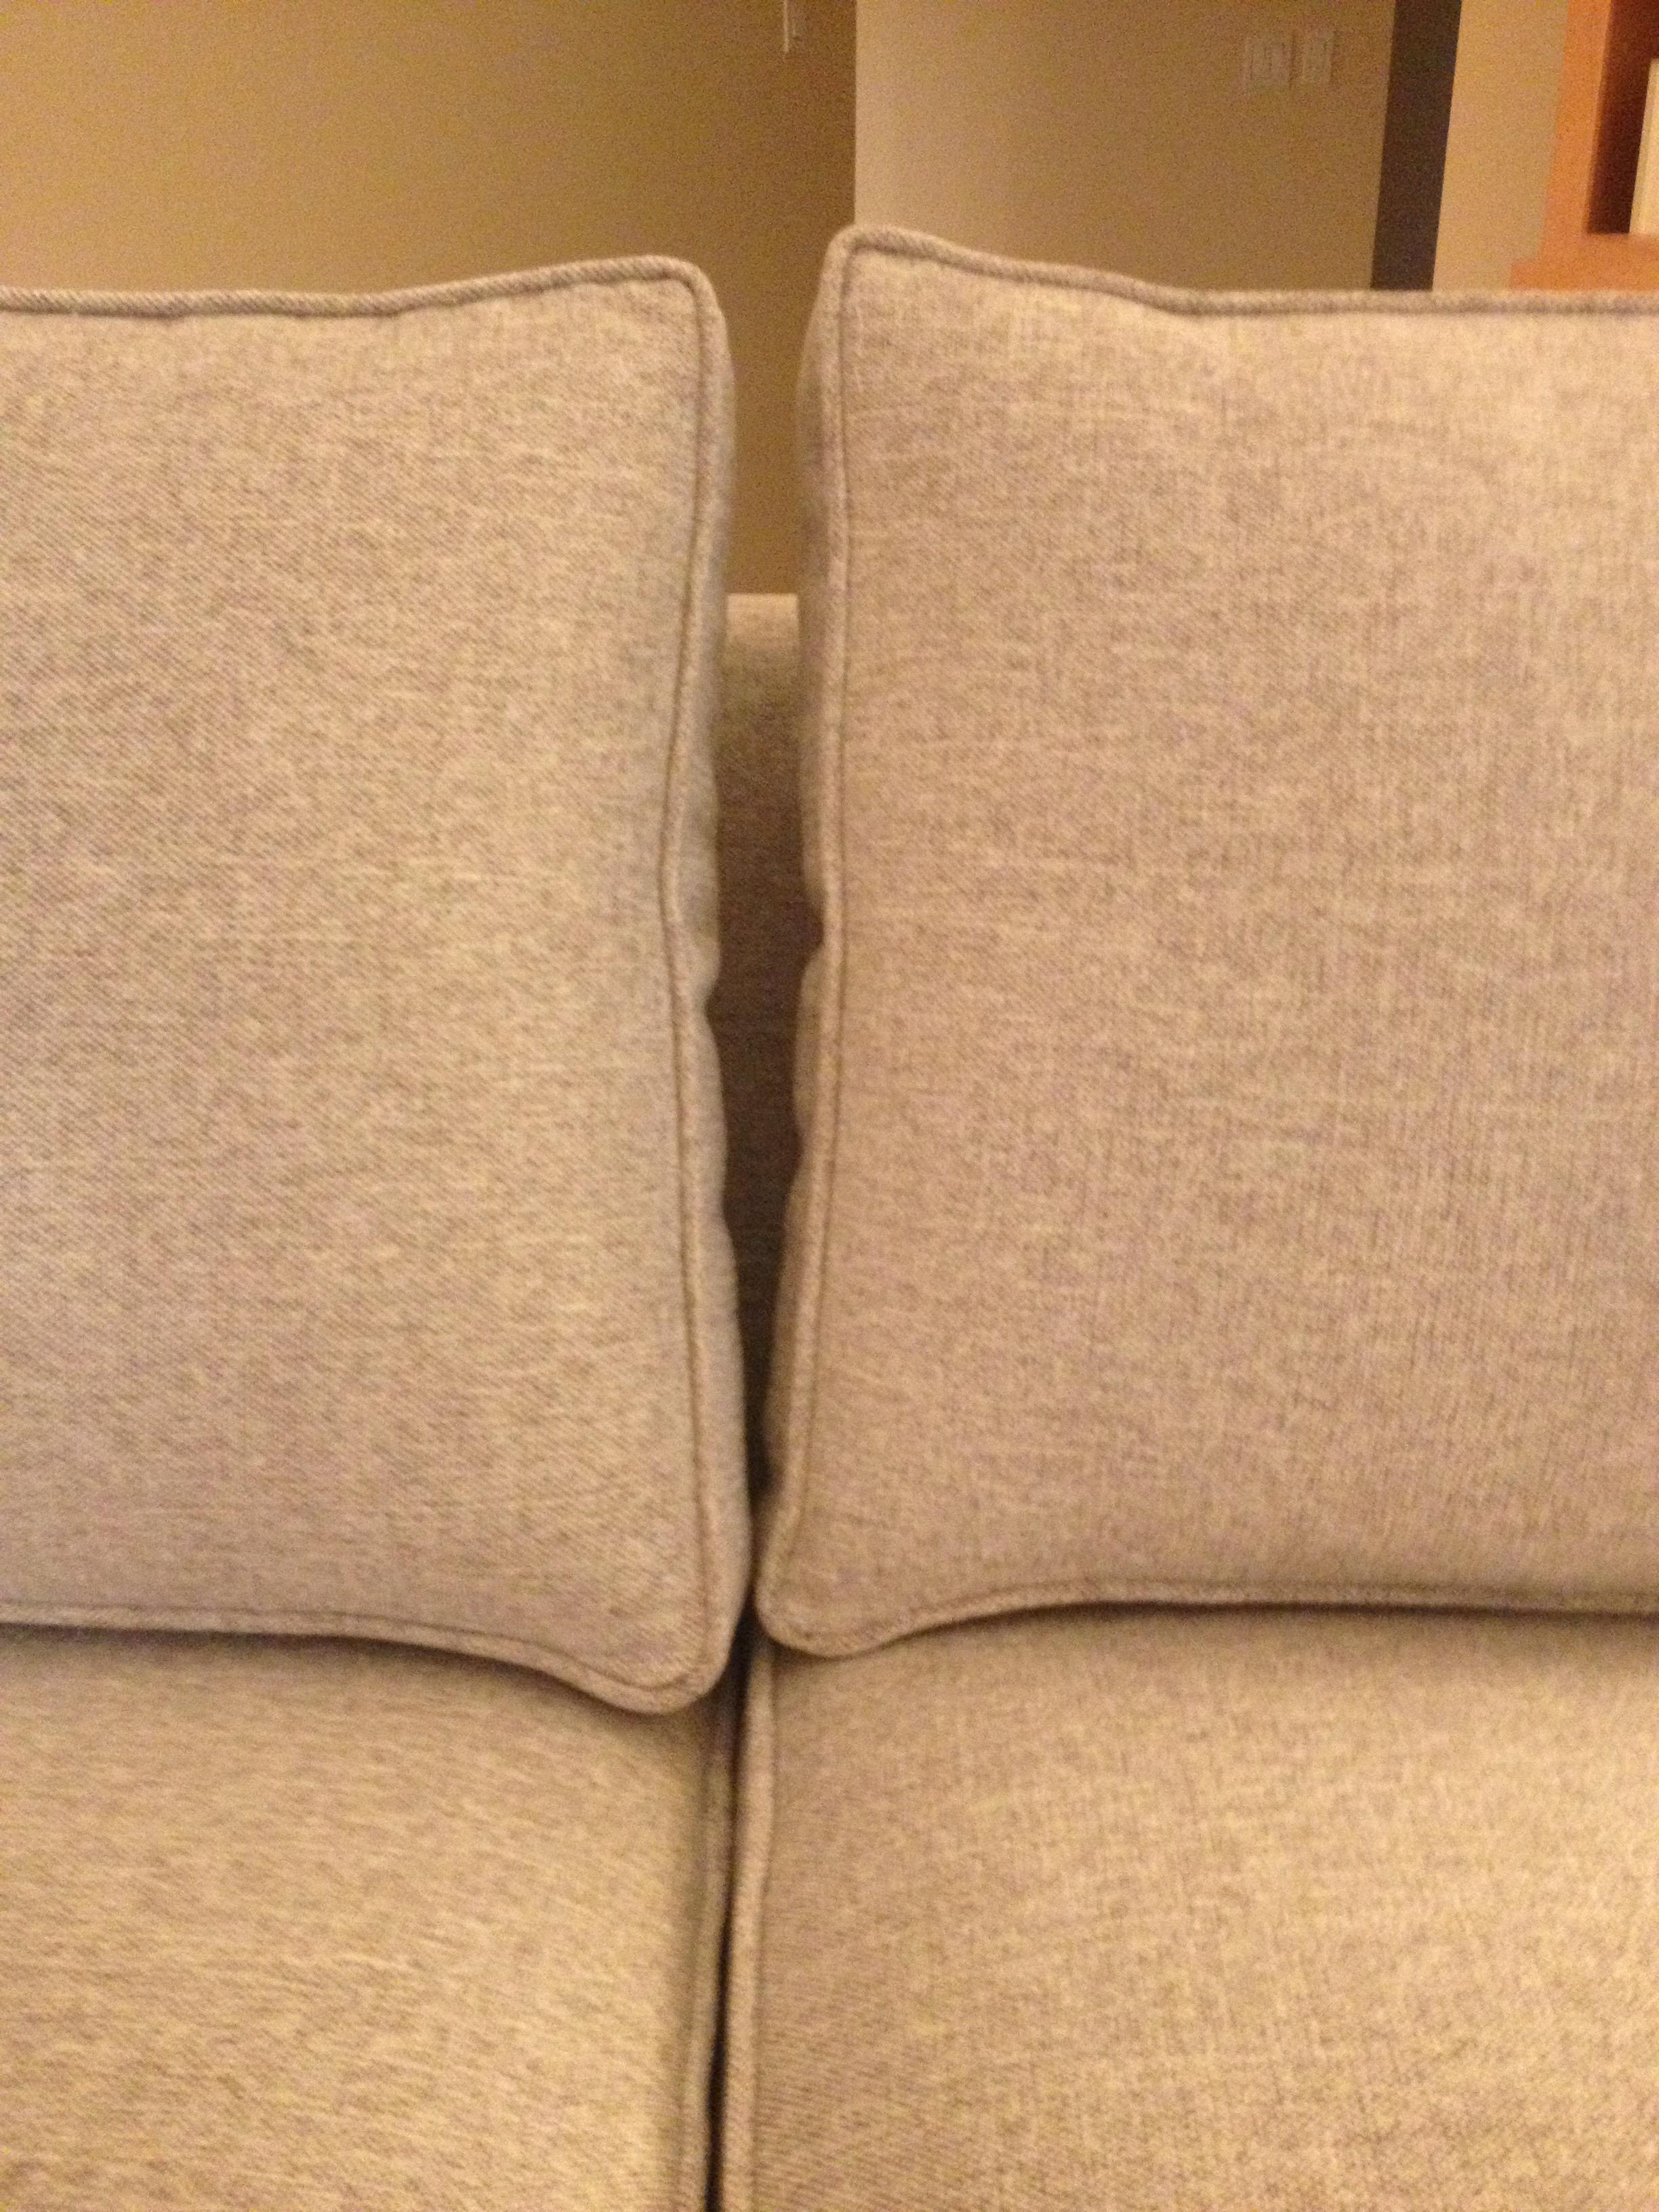 Genial ... Different Sizes, Back Cushions Did Not Fit Well Along Back Of Couch   2  Inches Between Each Cushion, Batting Not Even In Various Places Along Frame.